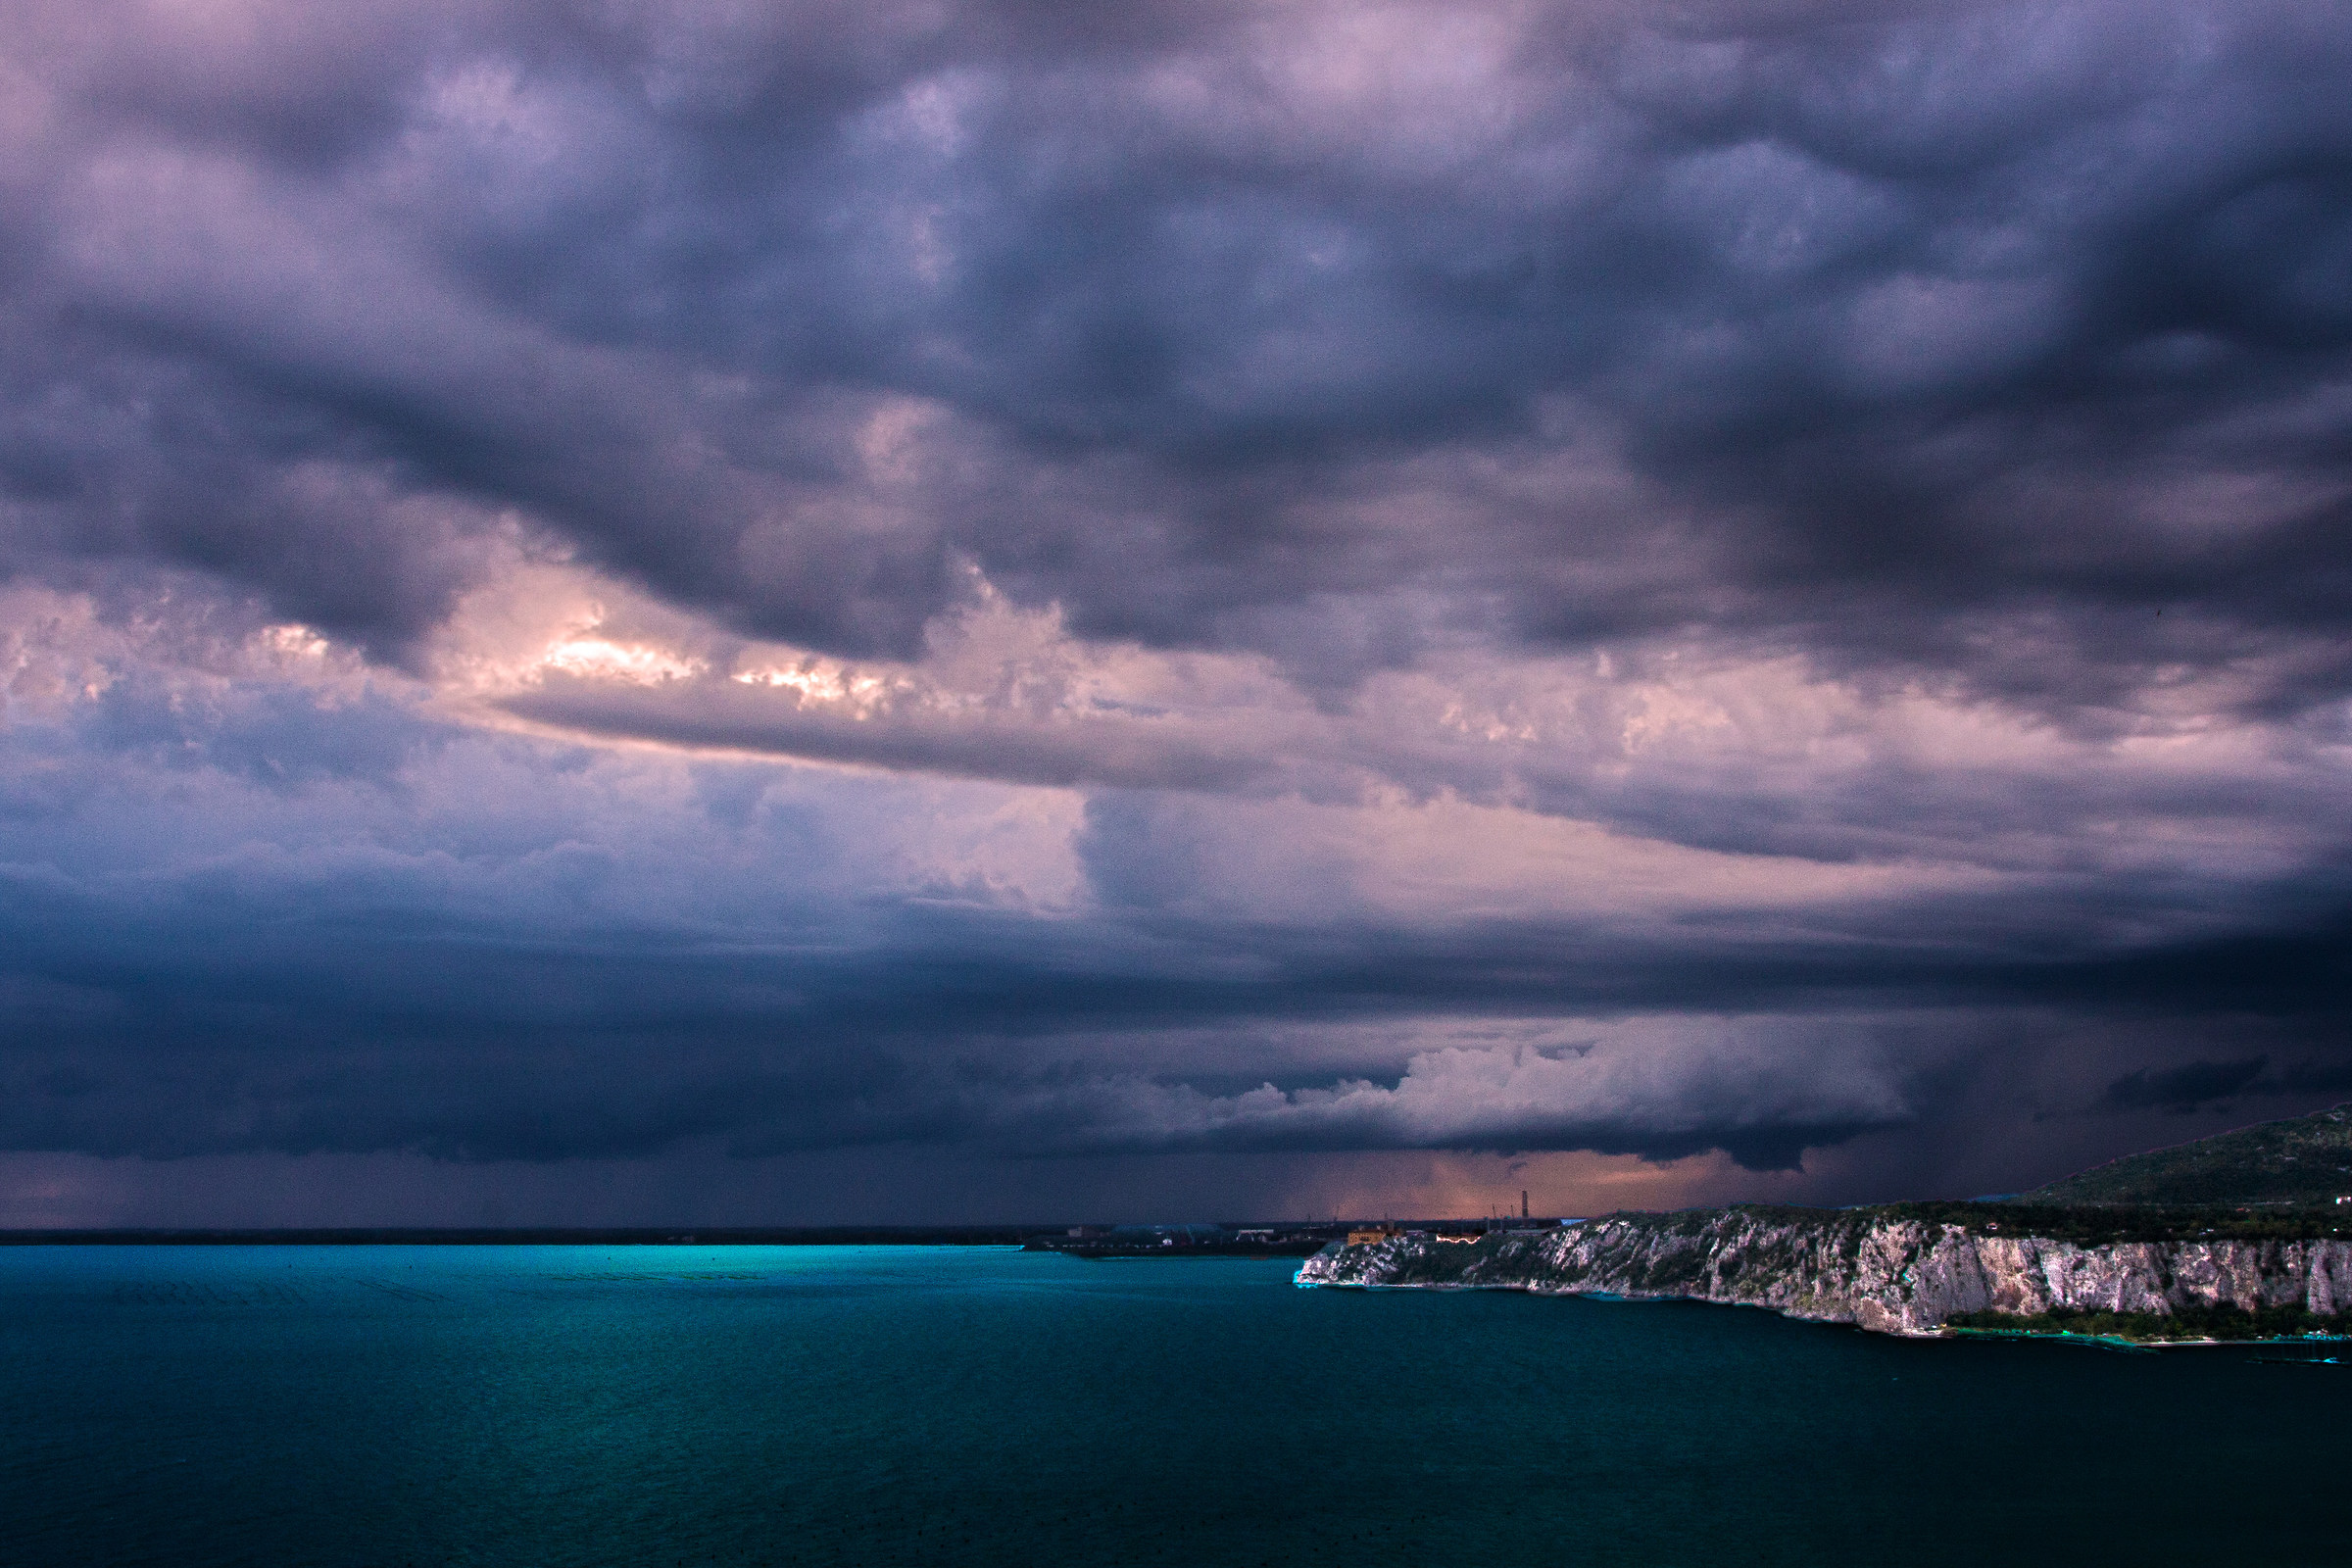 Storm in arrive...